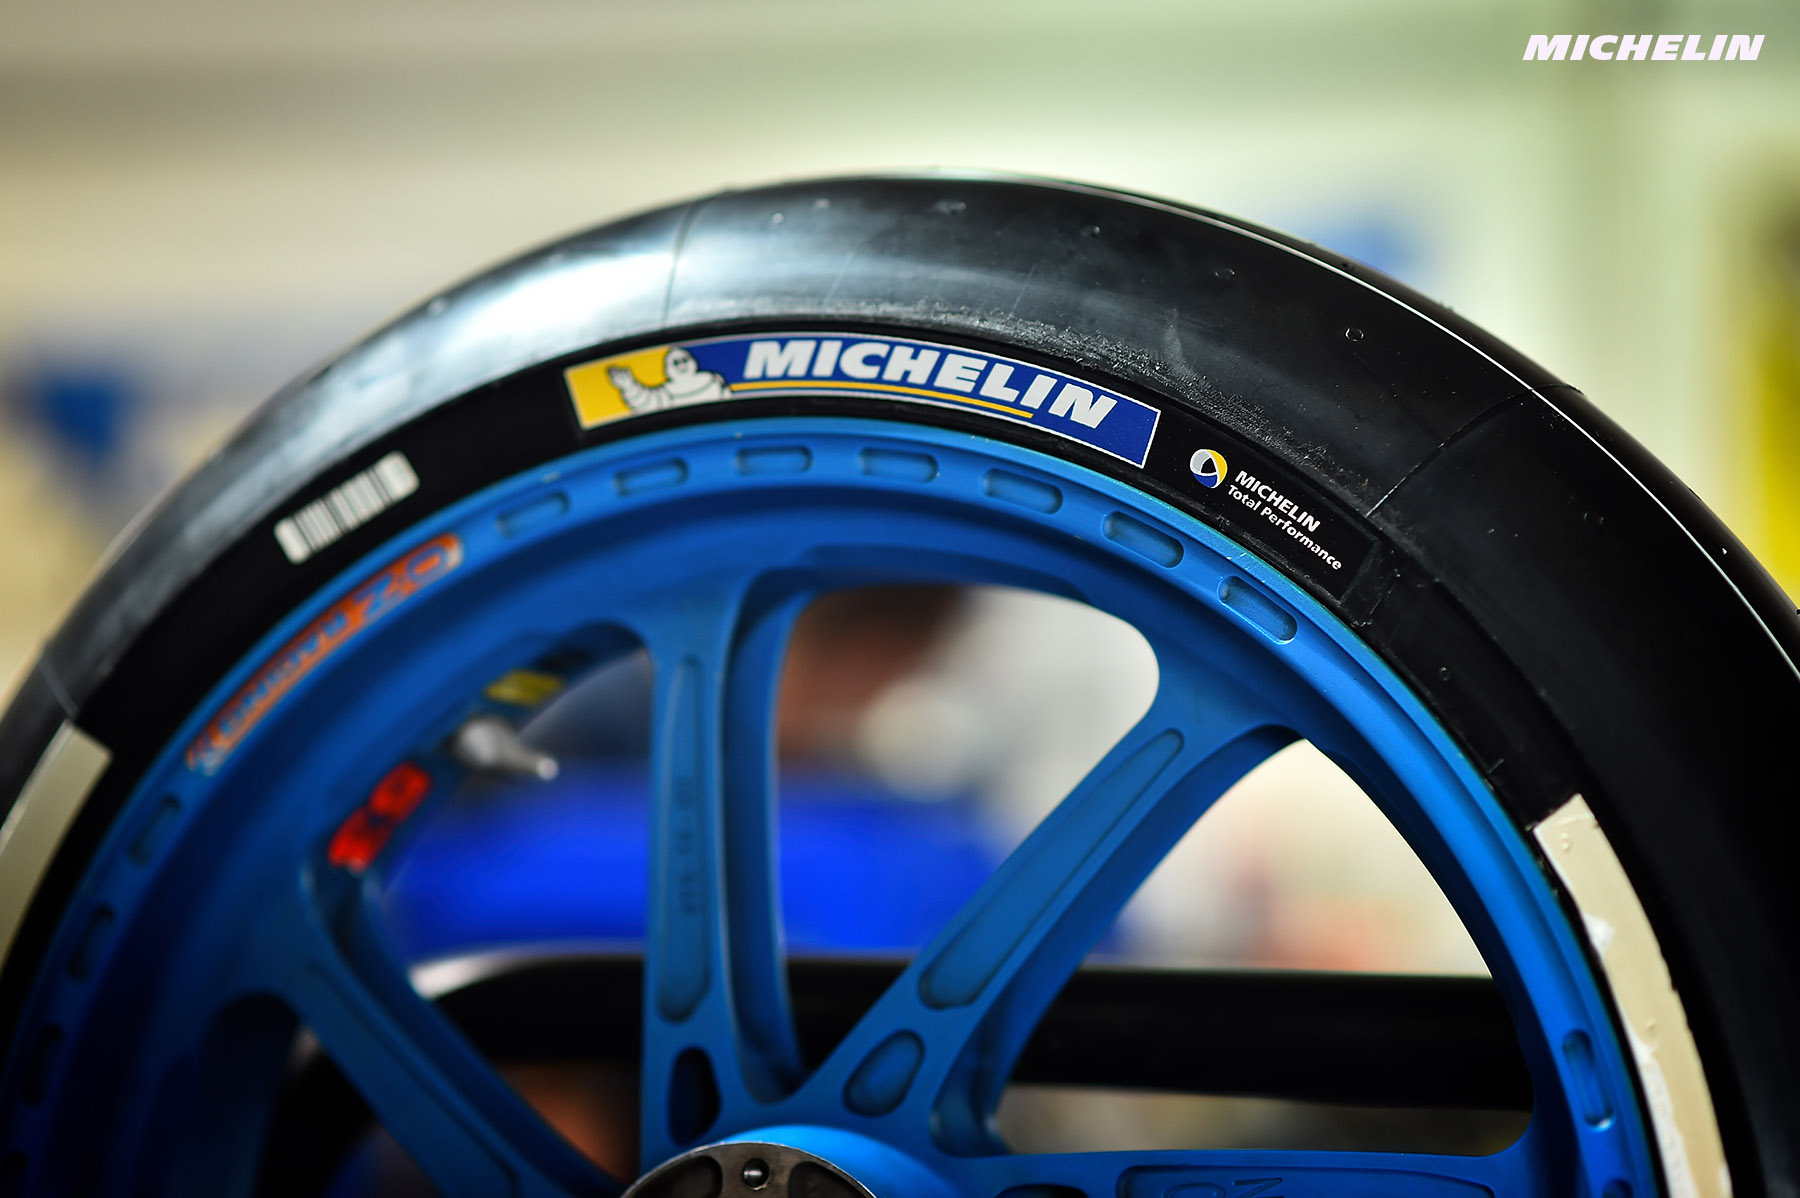 Michelin Named Official Motogp Tyre Supplier Until 2023